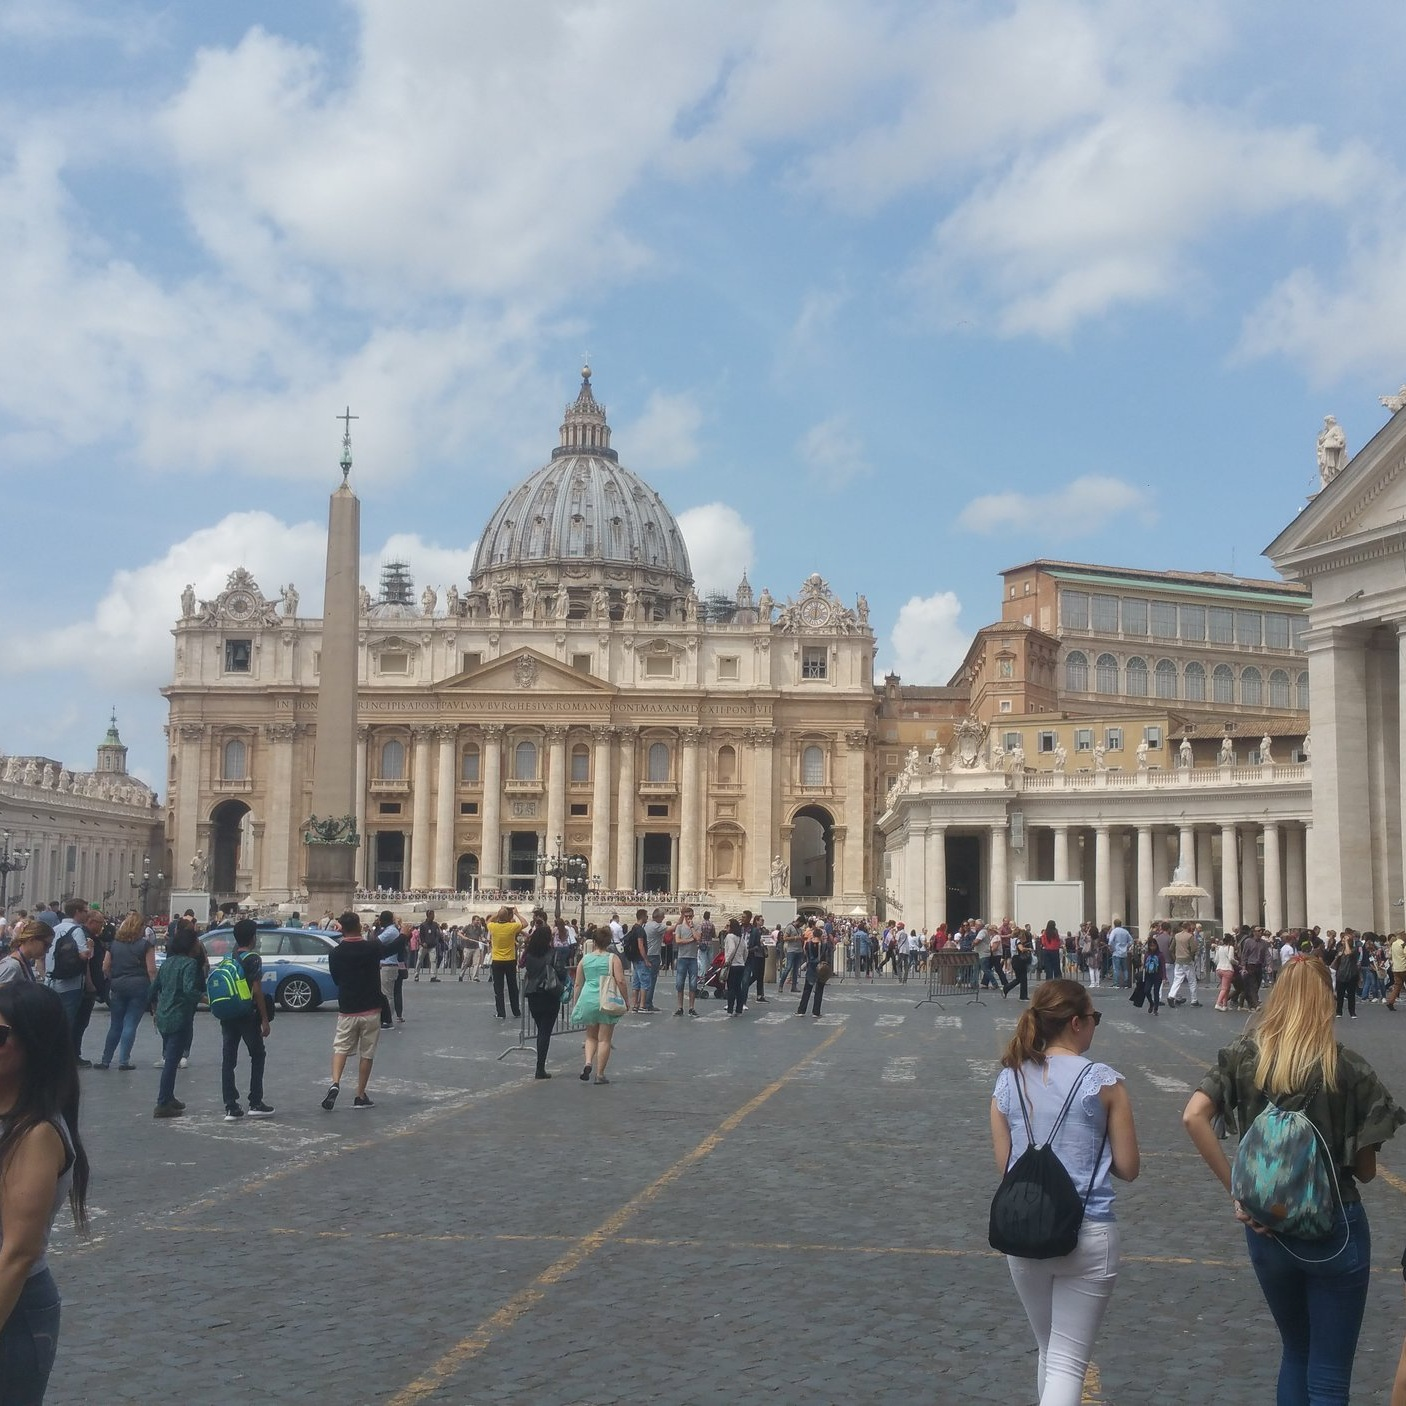 ST. PETER'S BASILICA  No visit to Italy is complete without visiting the Vatican